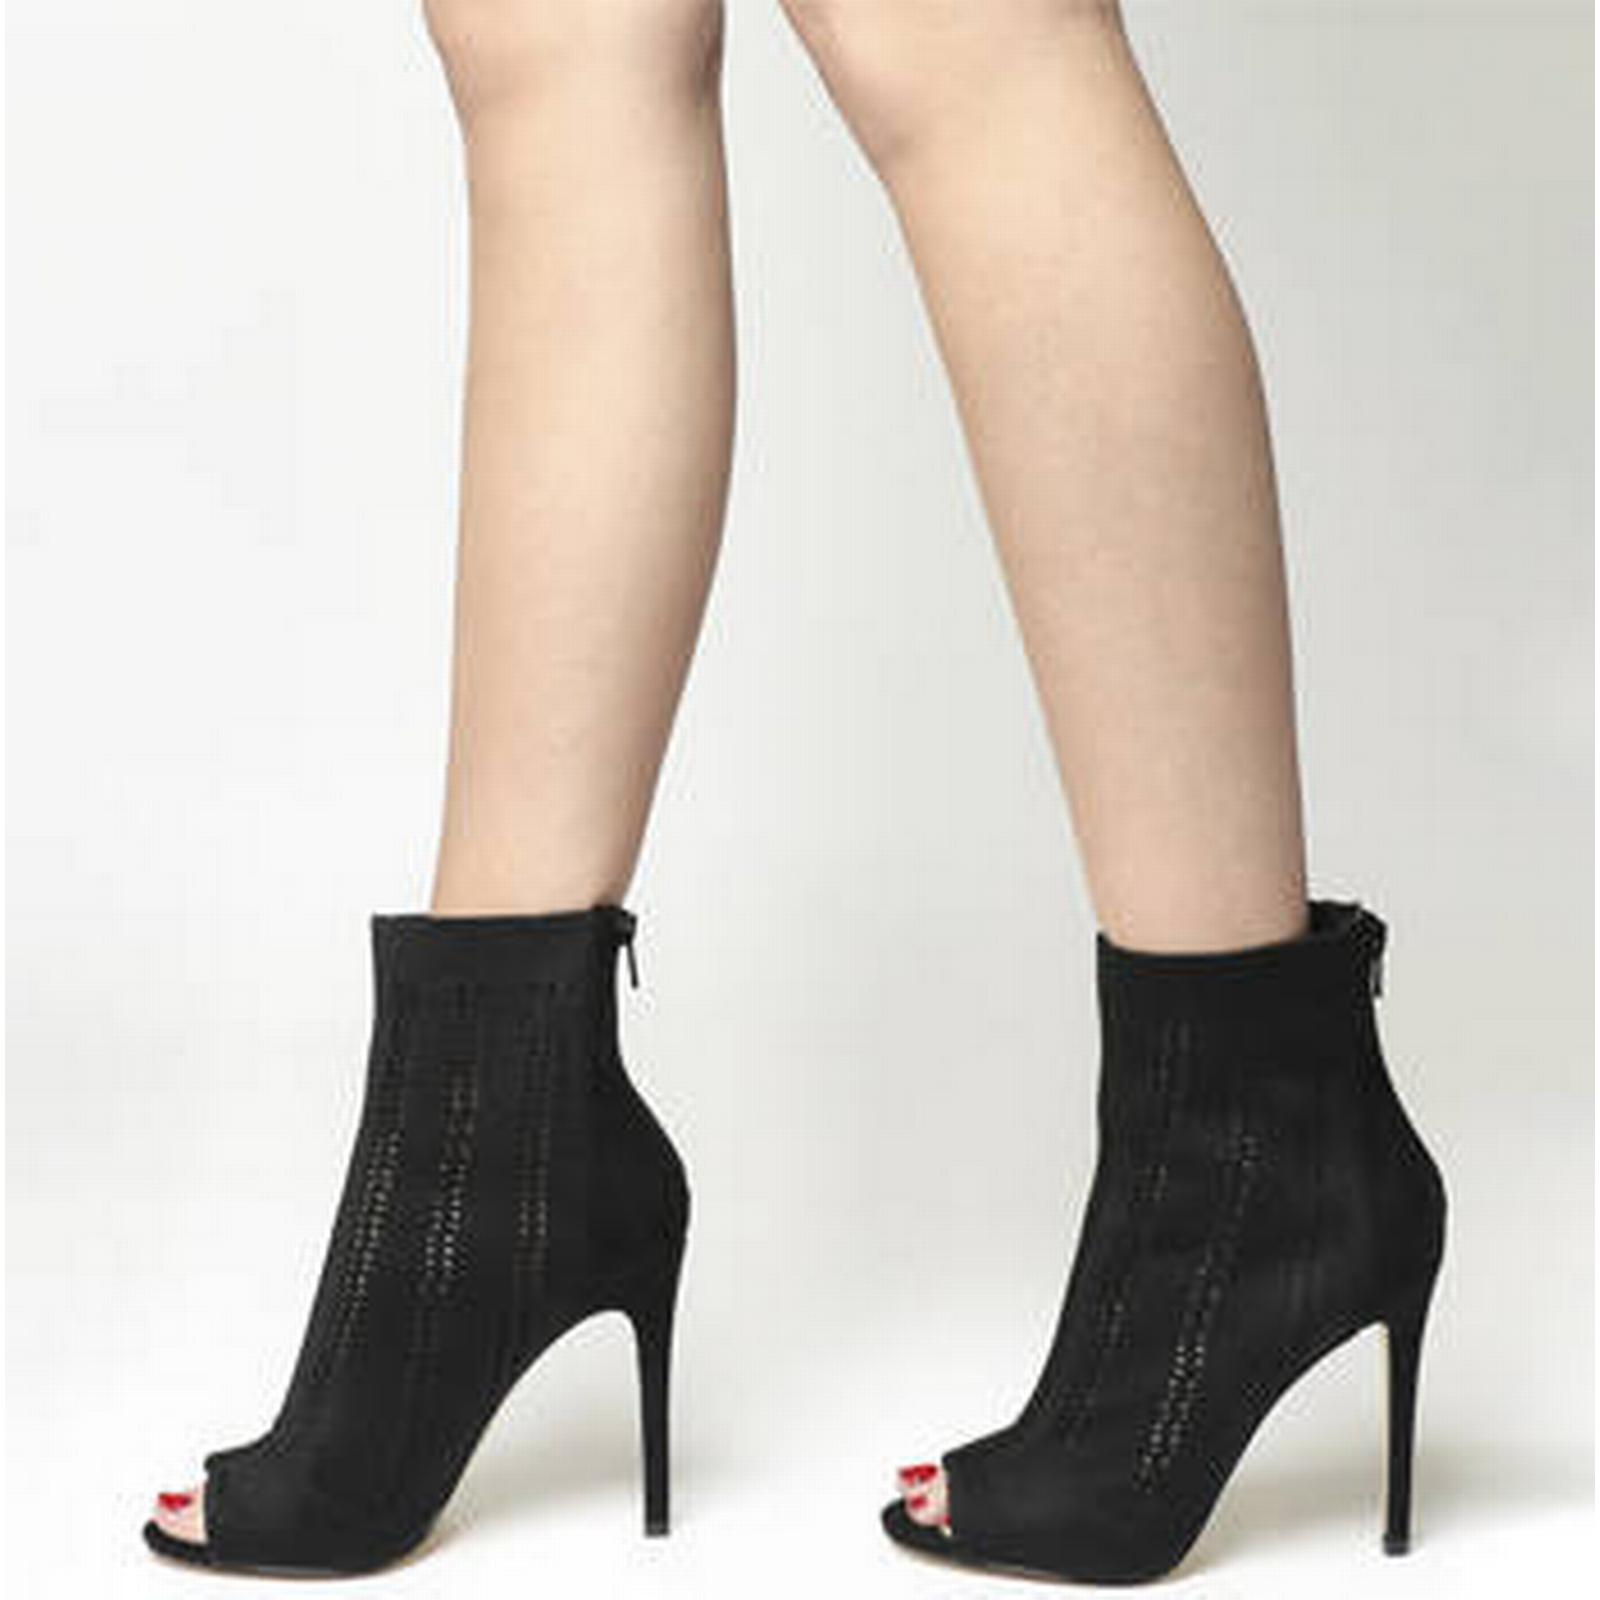 Office Lipstick Ankle Peep Toe Ankle Lipstick Boots BLACK KNIT 0fa5f7